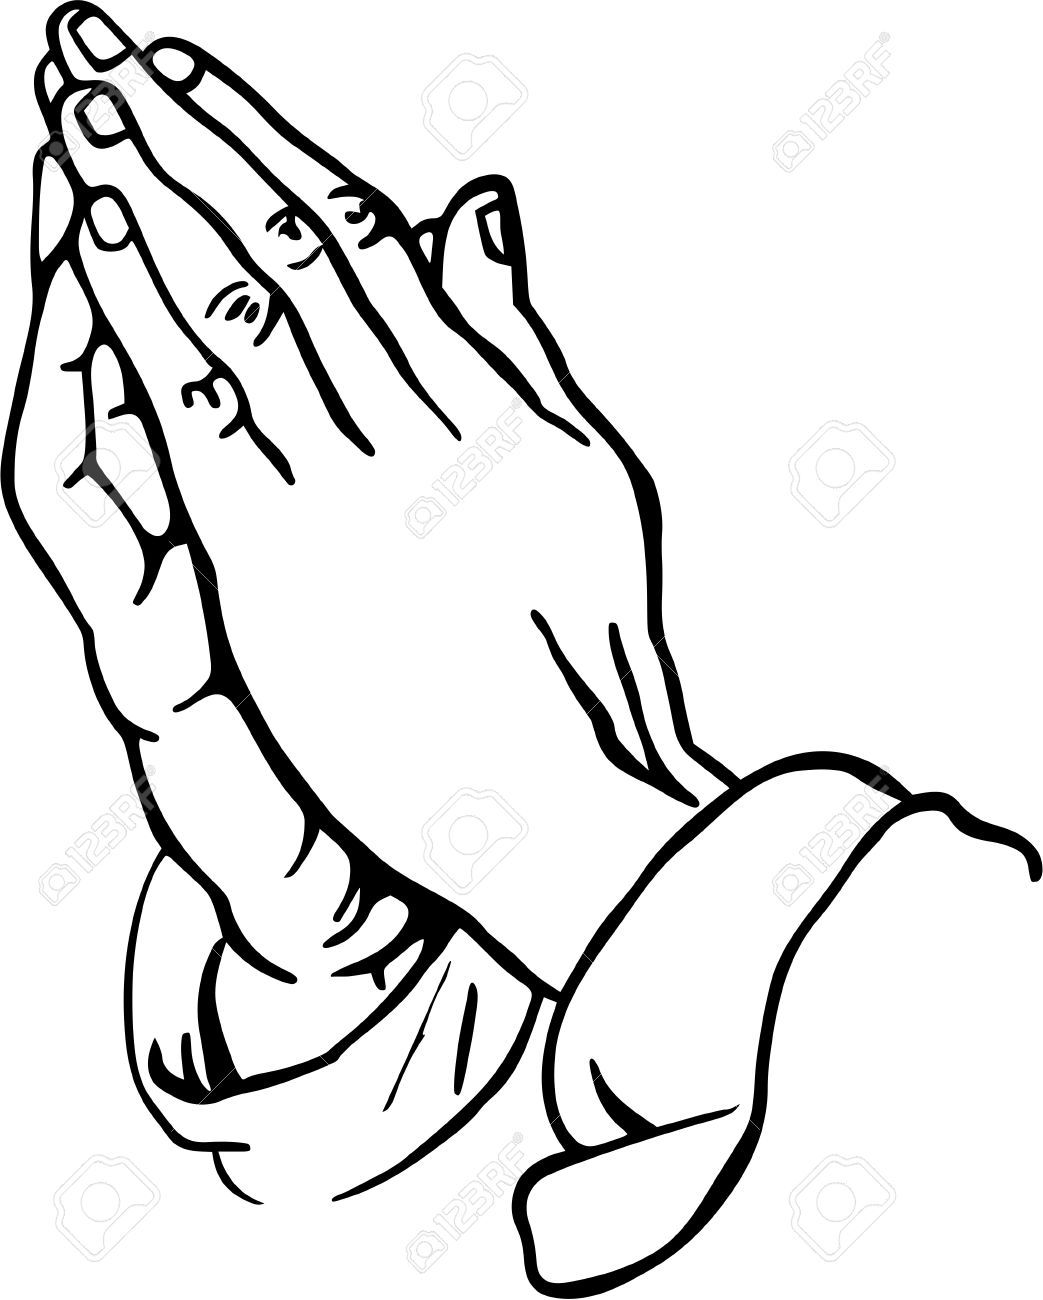 praying hands clipart stock photo picture and royalty free image rh pinterest com clip art praying hands print for free praying hands clipart